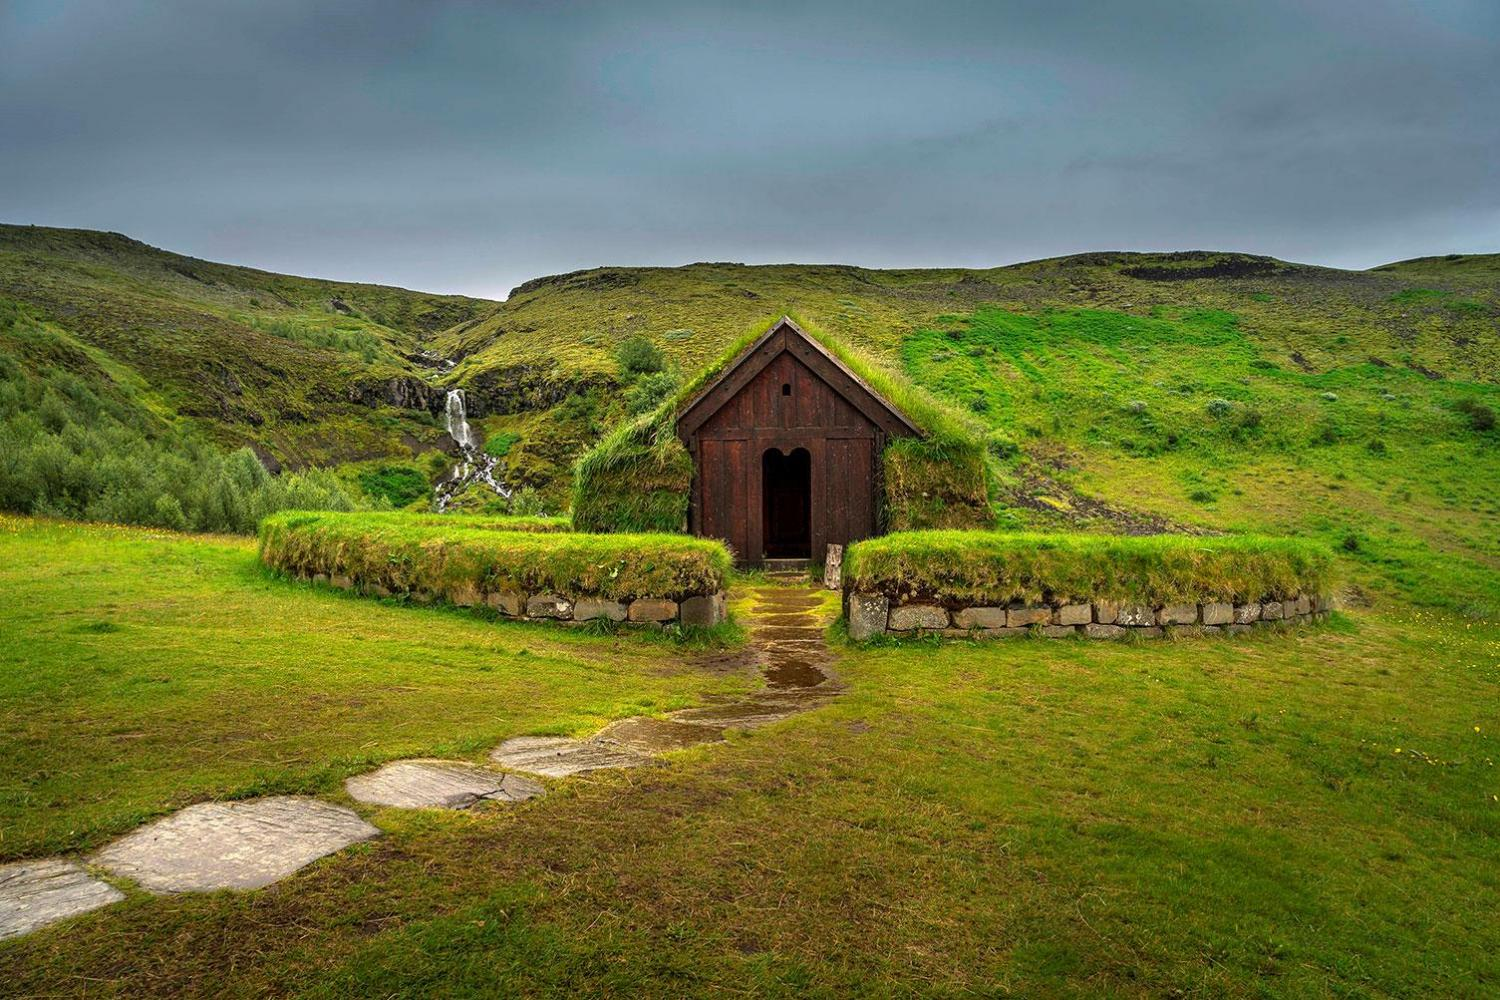 Travel The Seven Kingdoms By Visiting The Filming Locations Of Game Of Thrones Pangaea Express